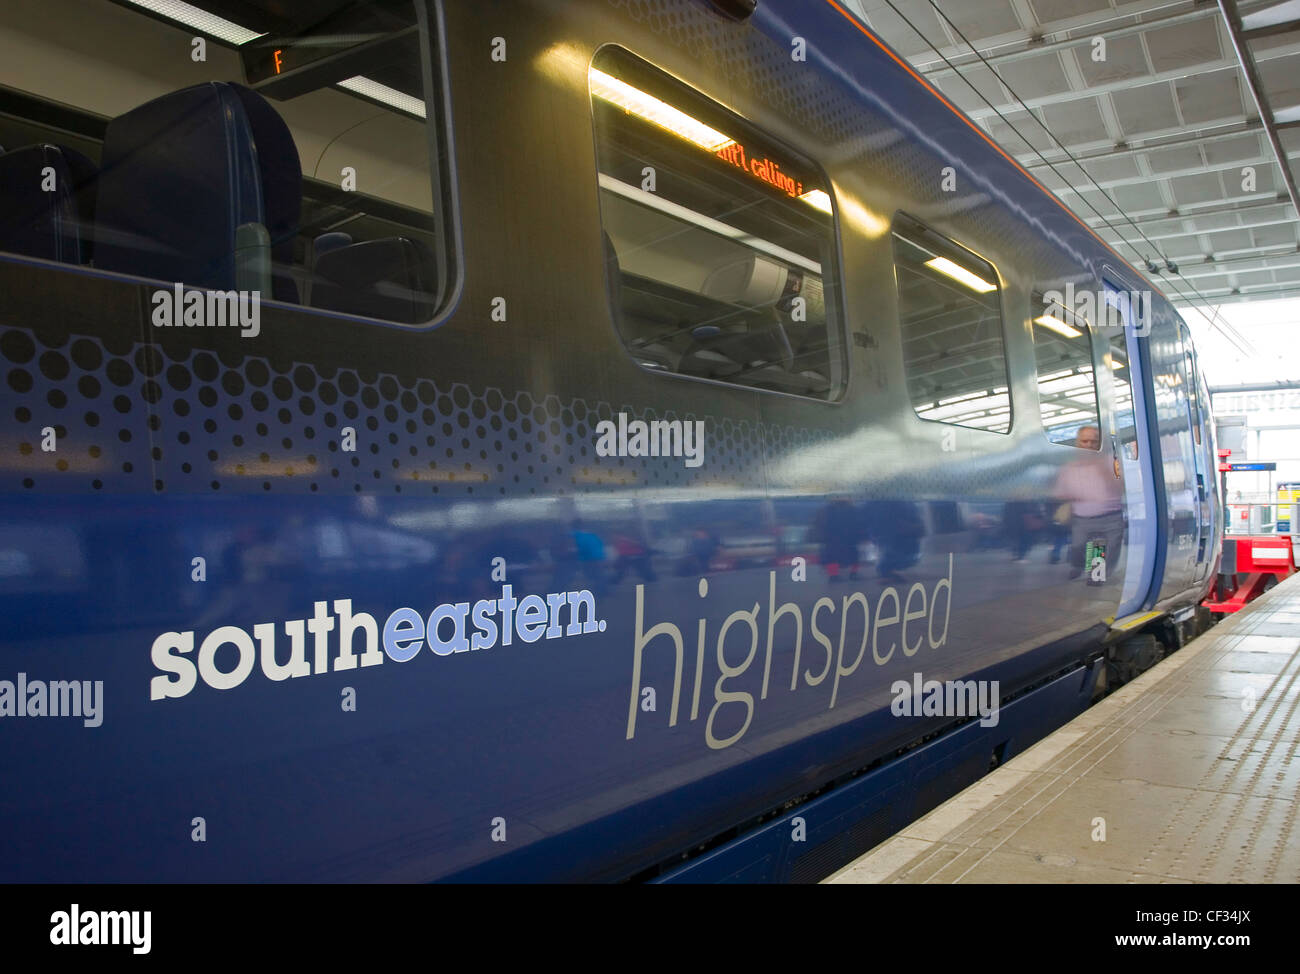 Southeastern highspeed train by a platform at St Pancras station. High Speed 1 (HS1), is the UK's first high - Stock Image